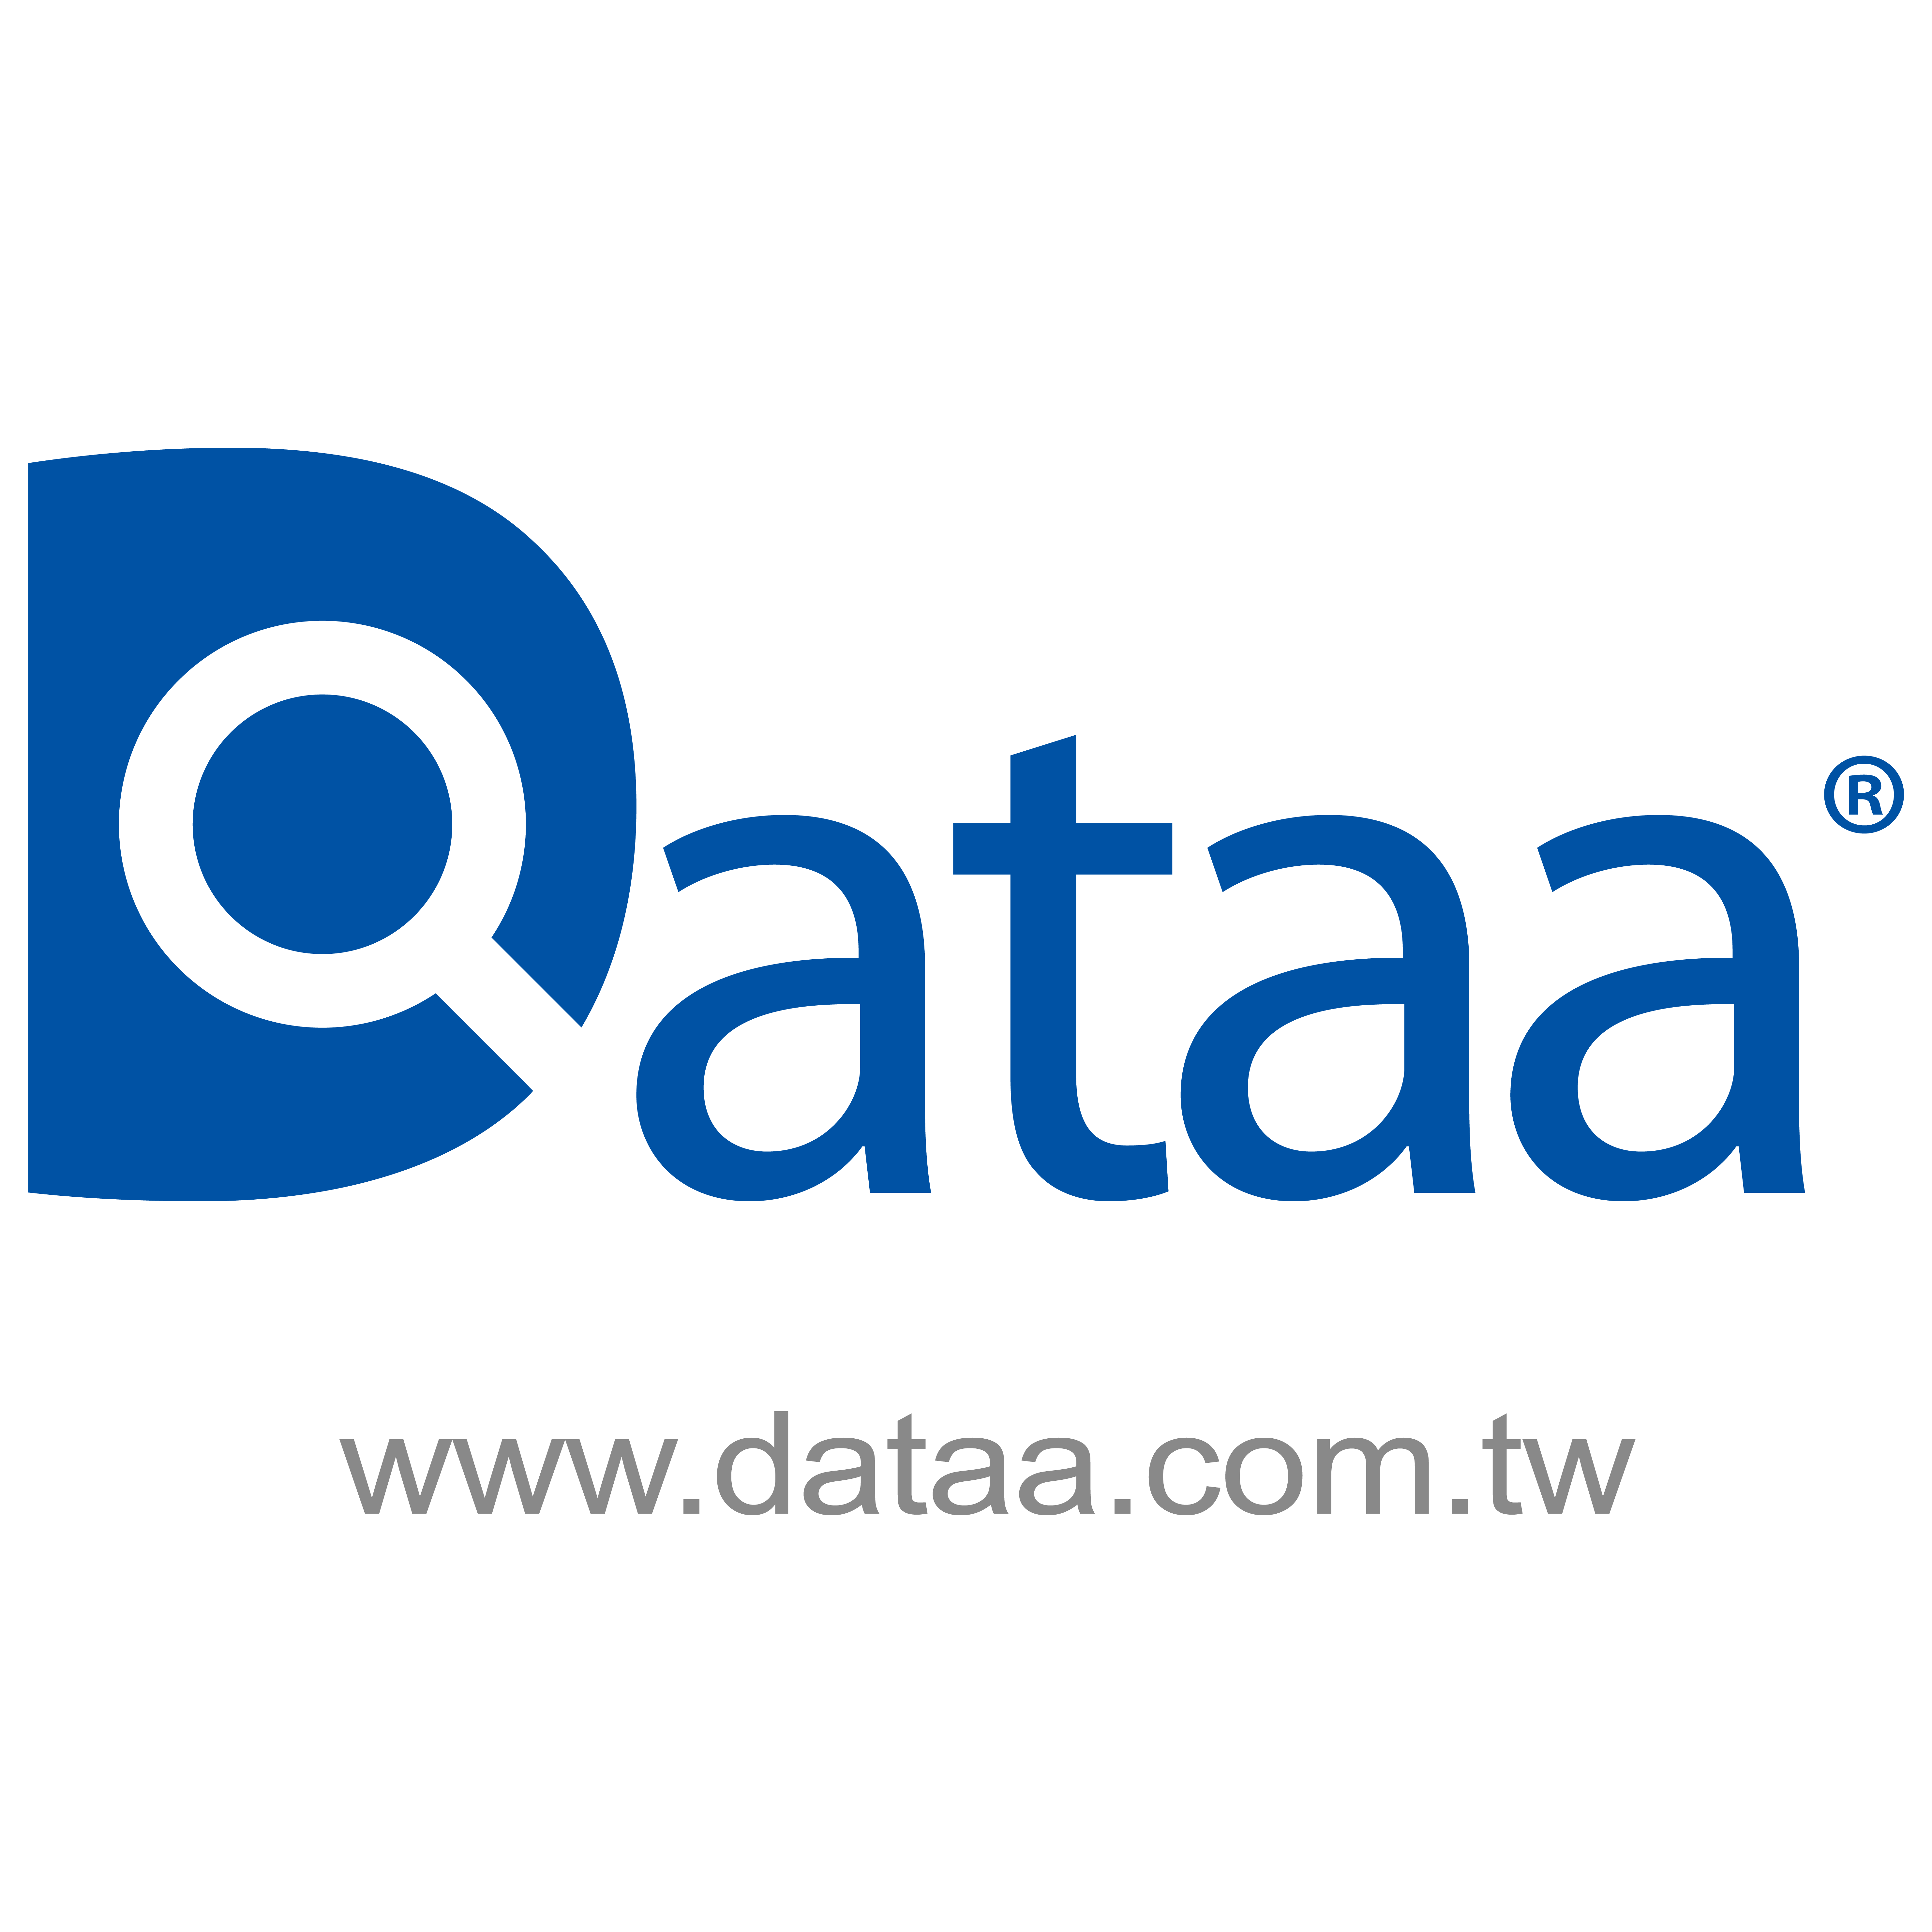 Data_logo2.png